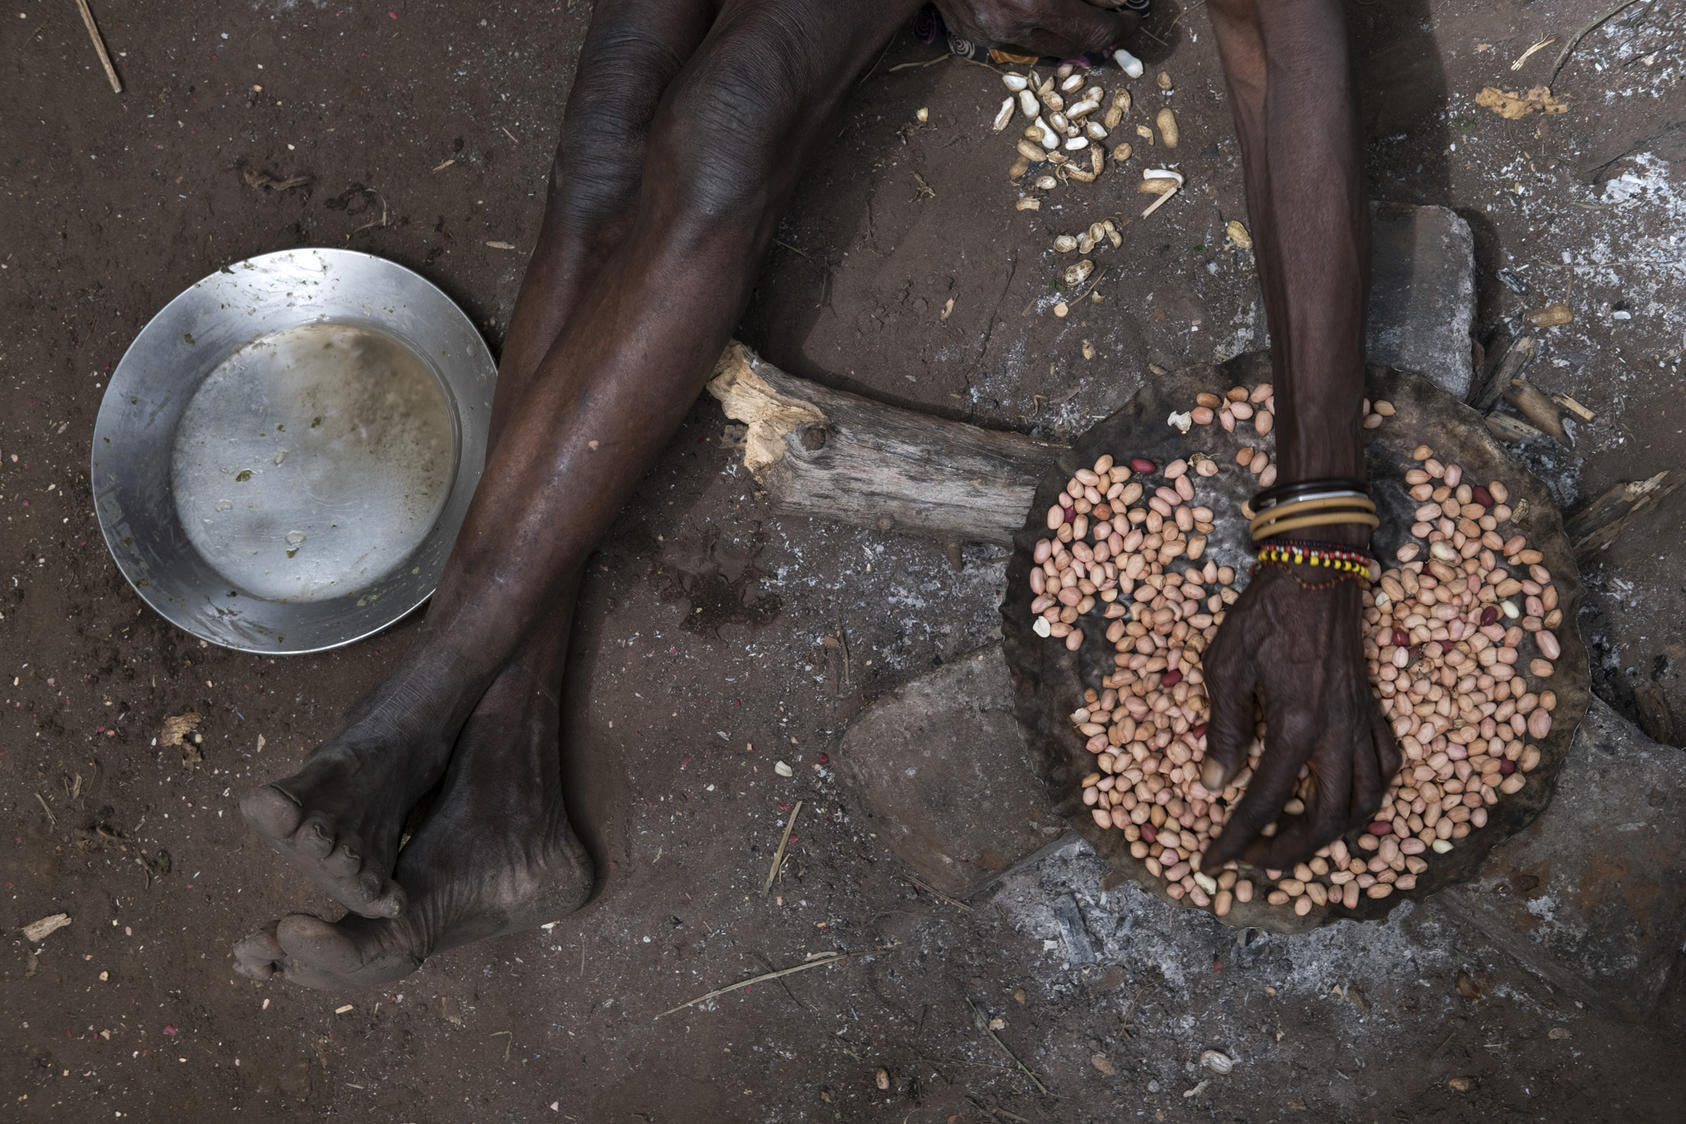 A woman roasts peanuts in South Sudan, Feb. 2017. The U.N. declared that parts of South Sudan were suffering a famine, a direct result of the ethnic feud between the Nuer and Dinka that is spiraling into a civil war. Photo Courtesy of the NYT/Tyler Hicks